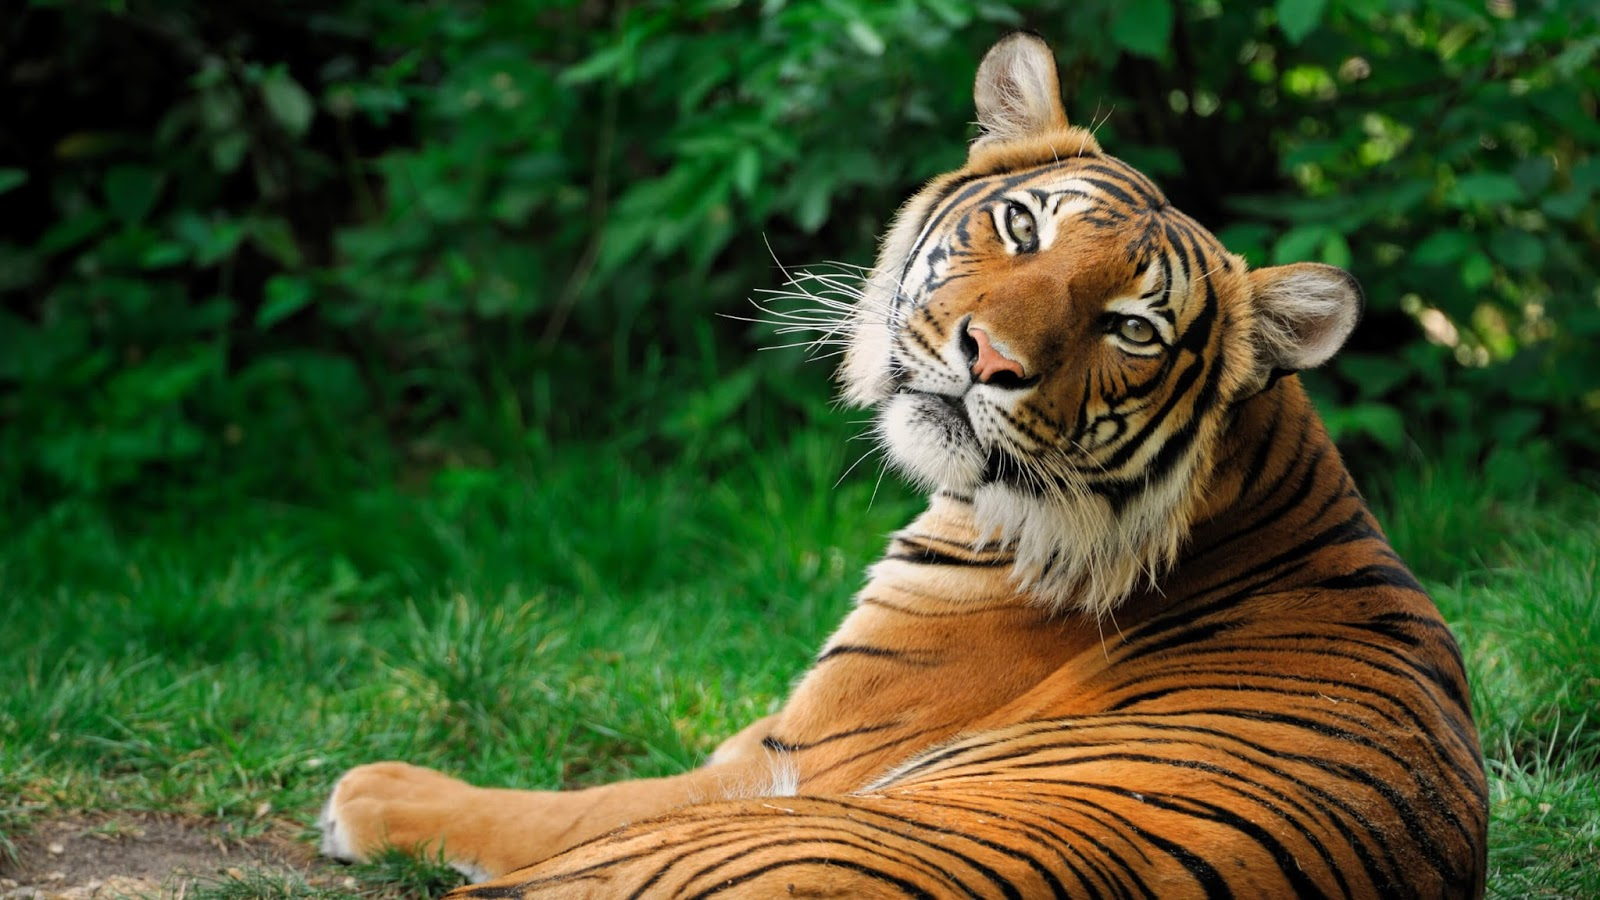 Tiger Hd Wallpaper Download 1080p Free New Wallpapers Hd High Quality Motion